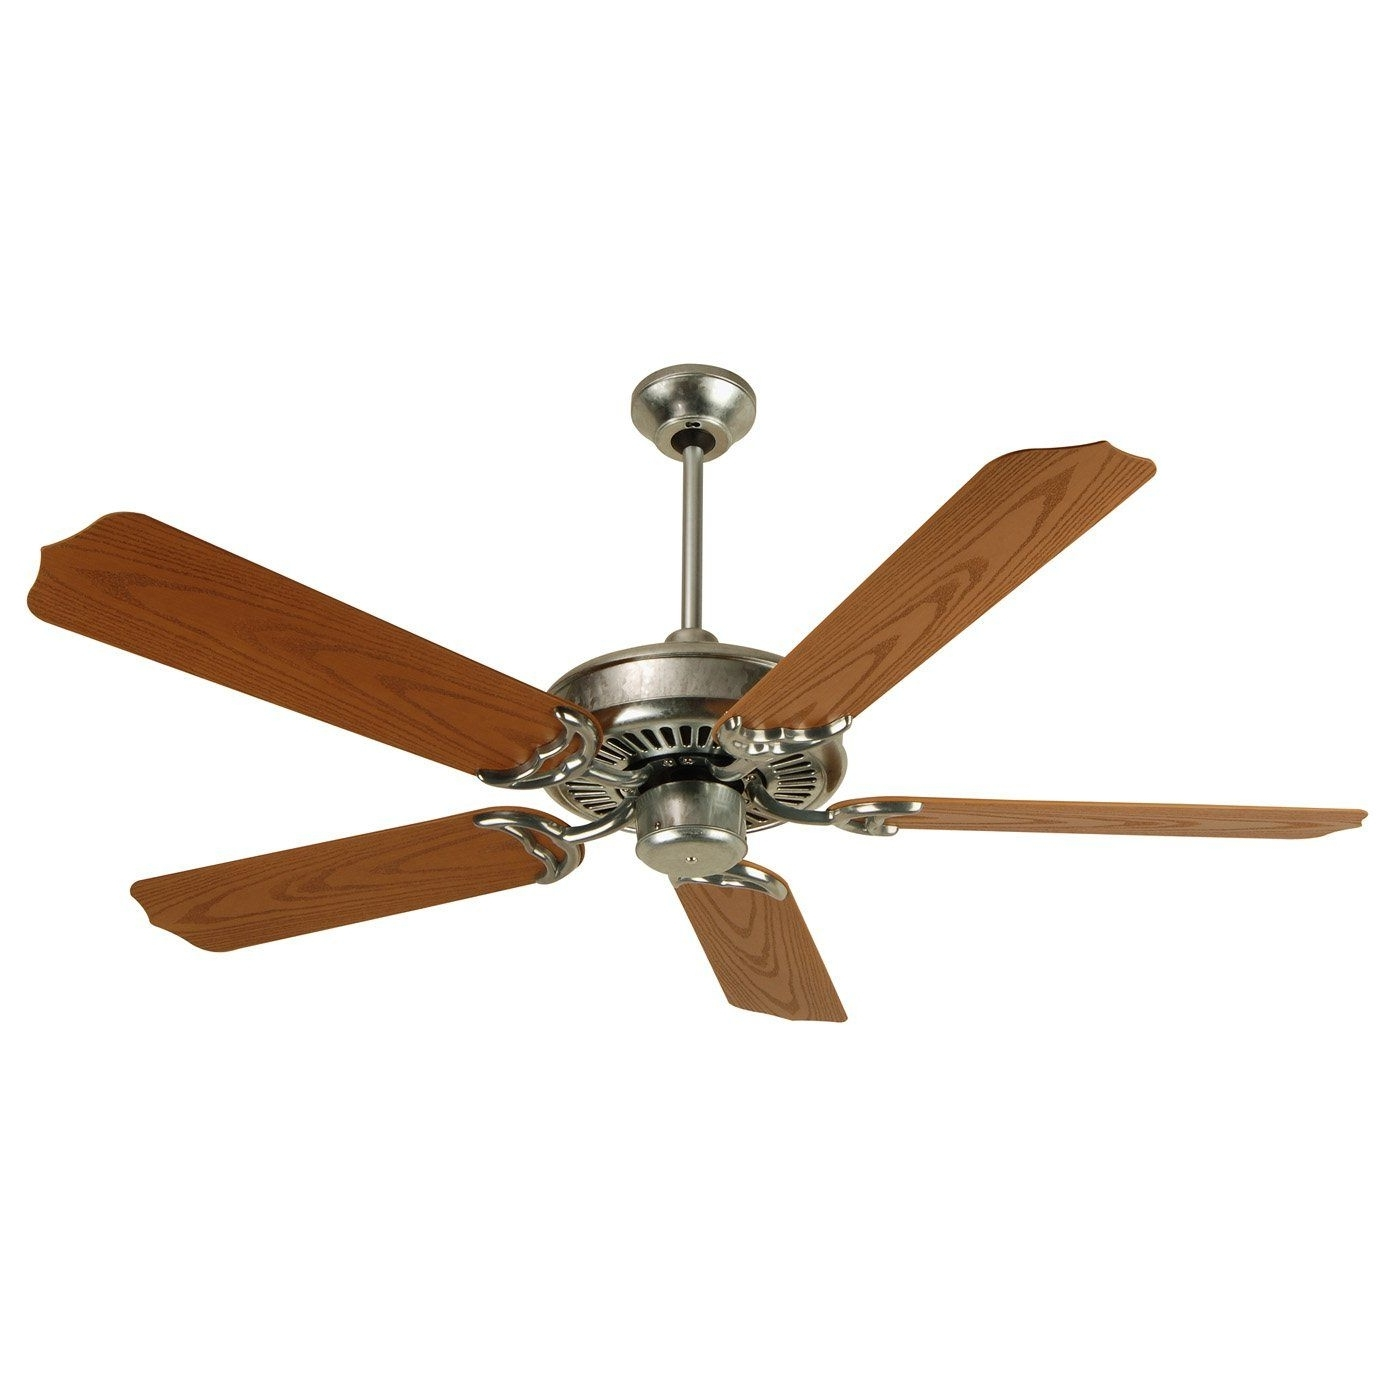 Craftmade Pf52 Porch Outdoor Ceiling Fan At Atg Stores (View 2 of 20)